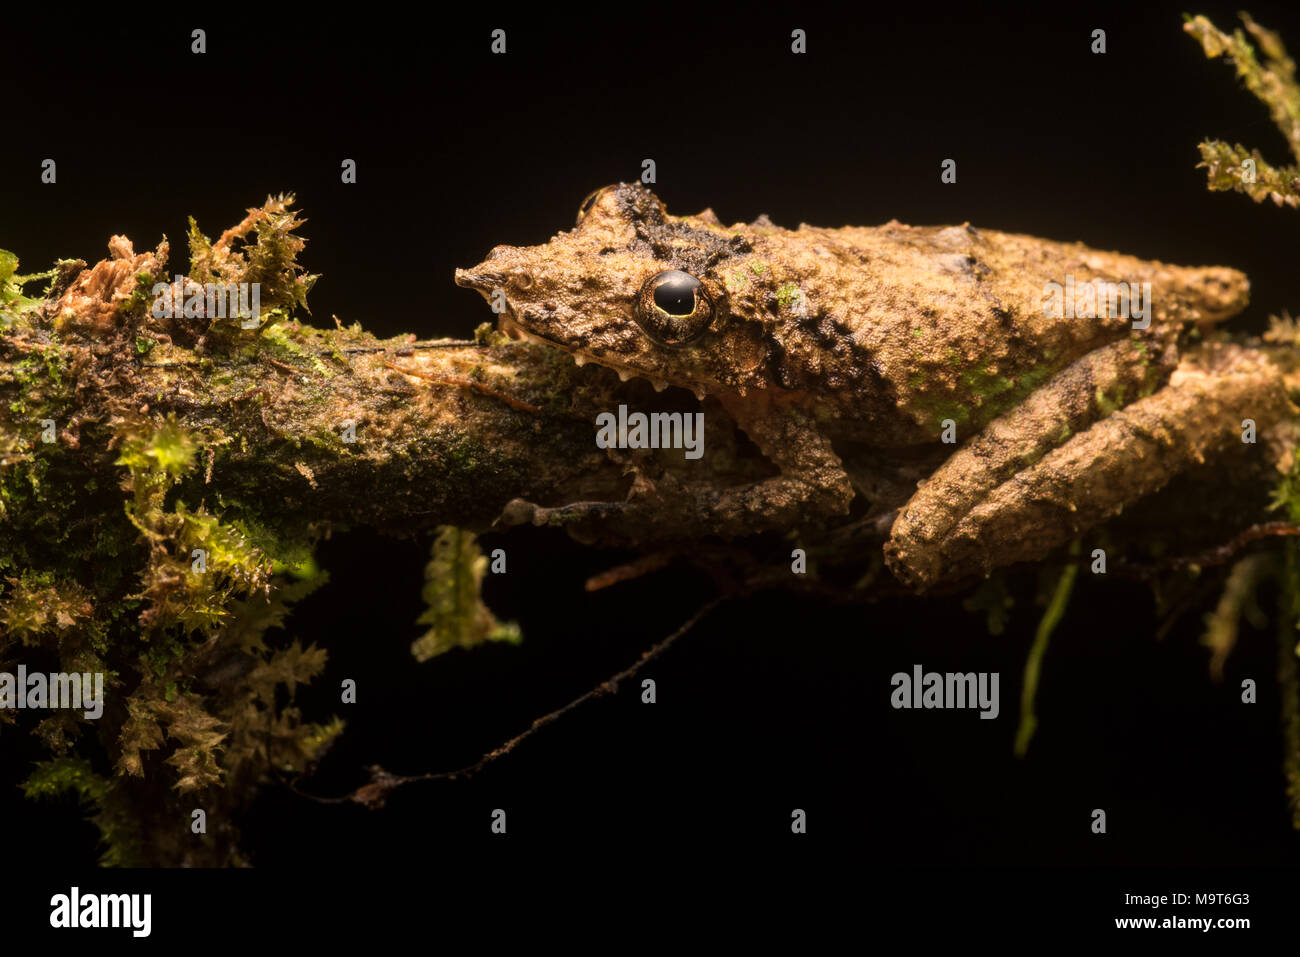 A snouted tree frog (Scinax garbei) from Peru, this species is very hard to find among the vegetation as its camouflage is excellent. - Stock Image